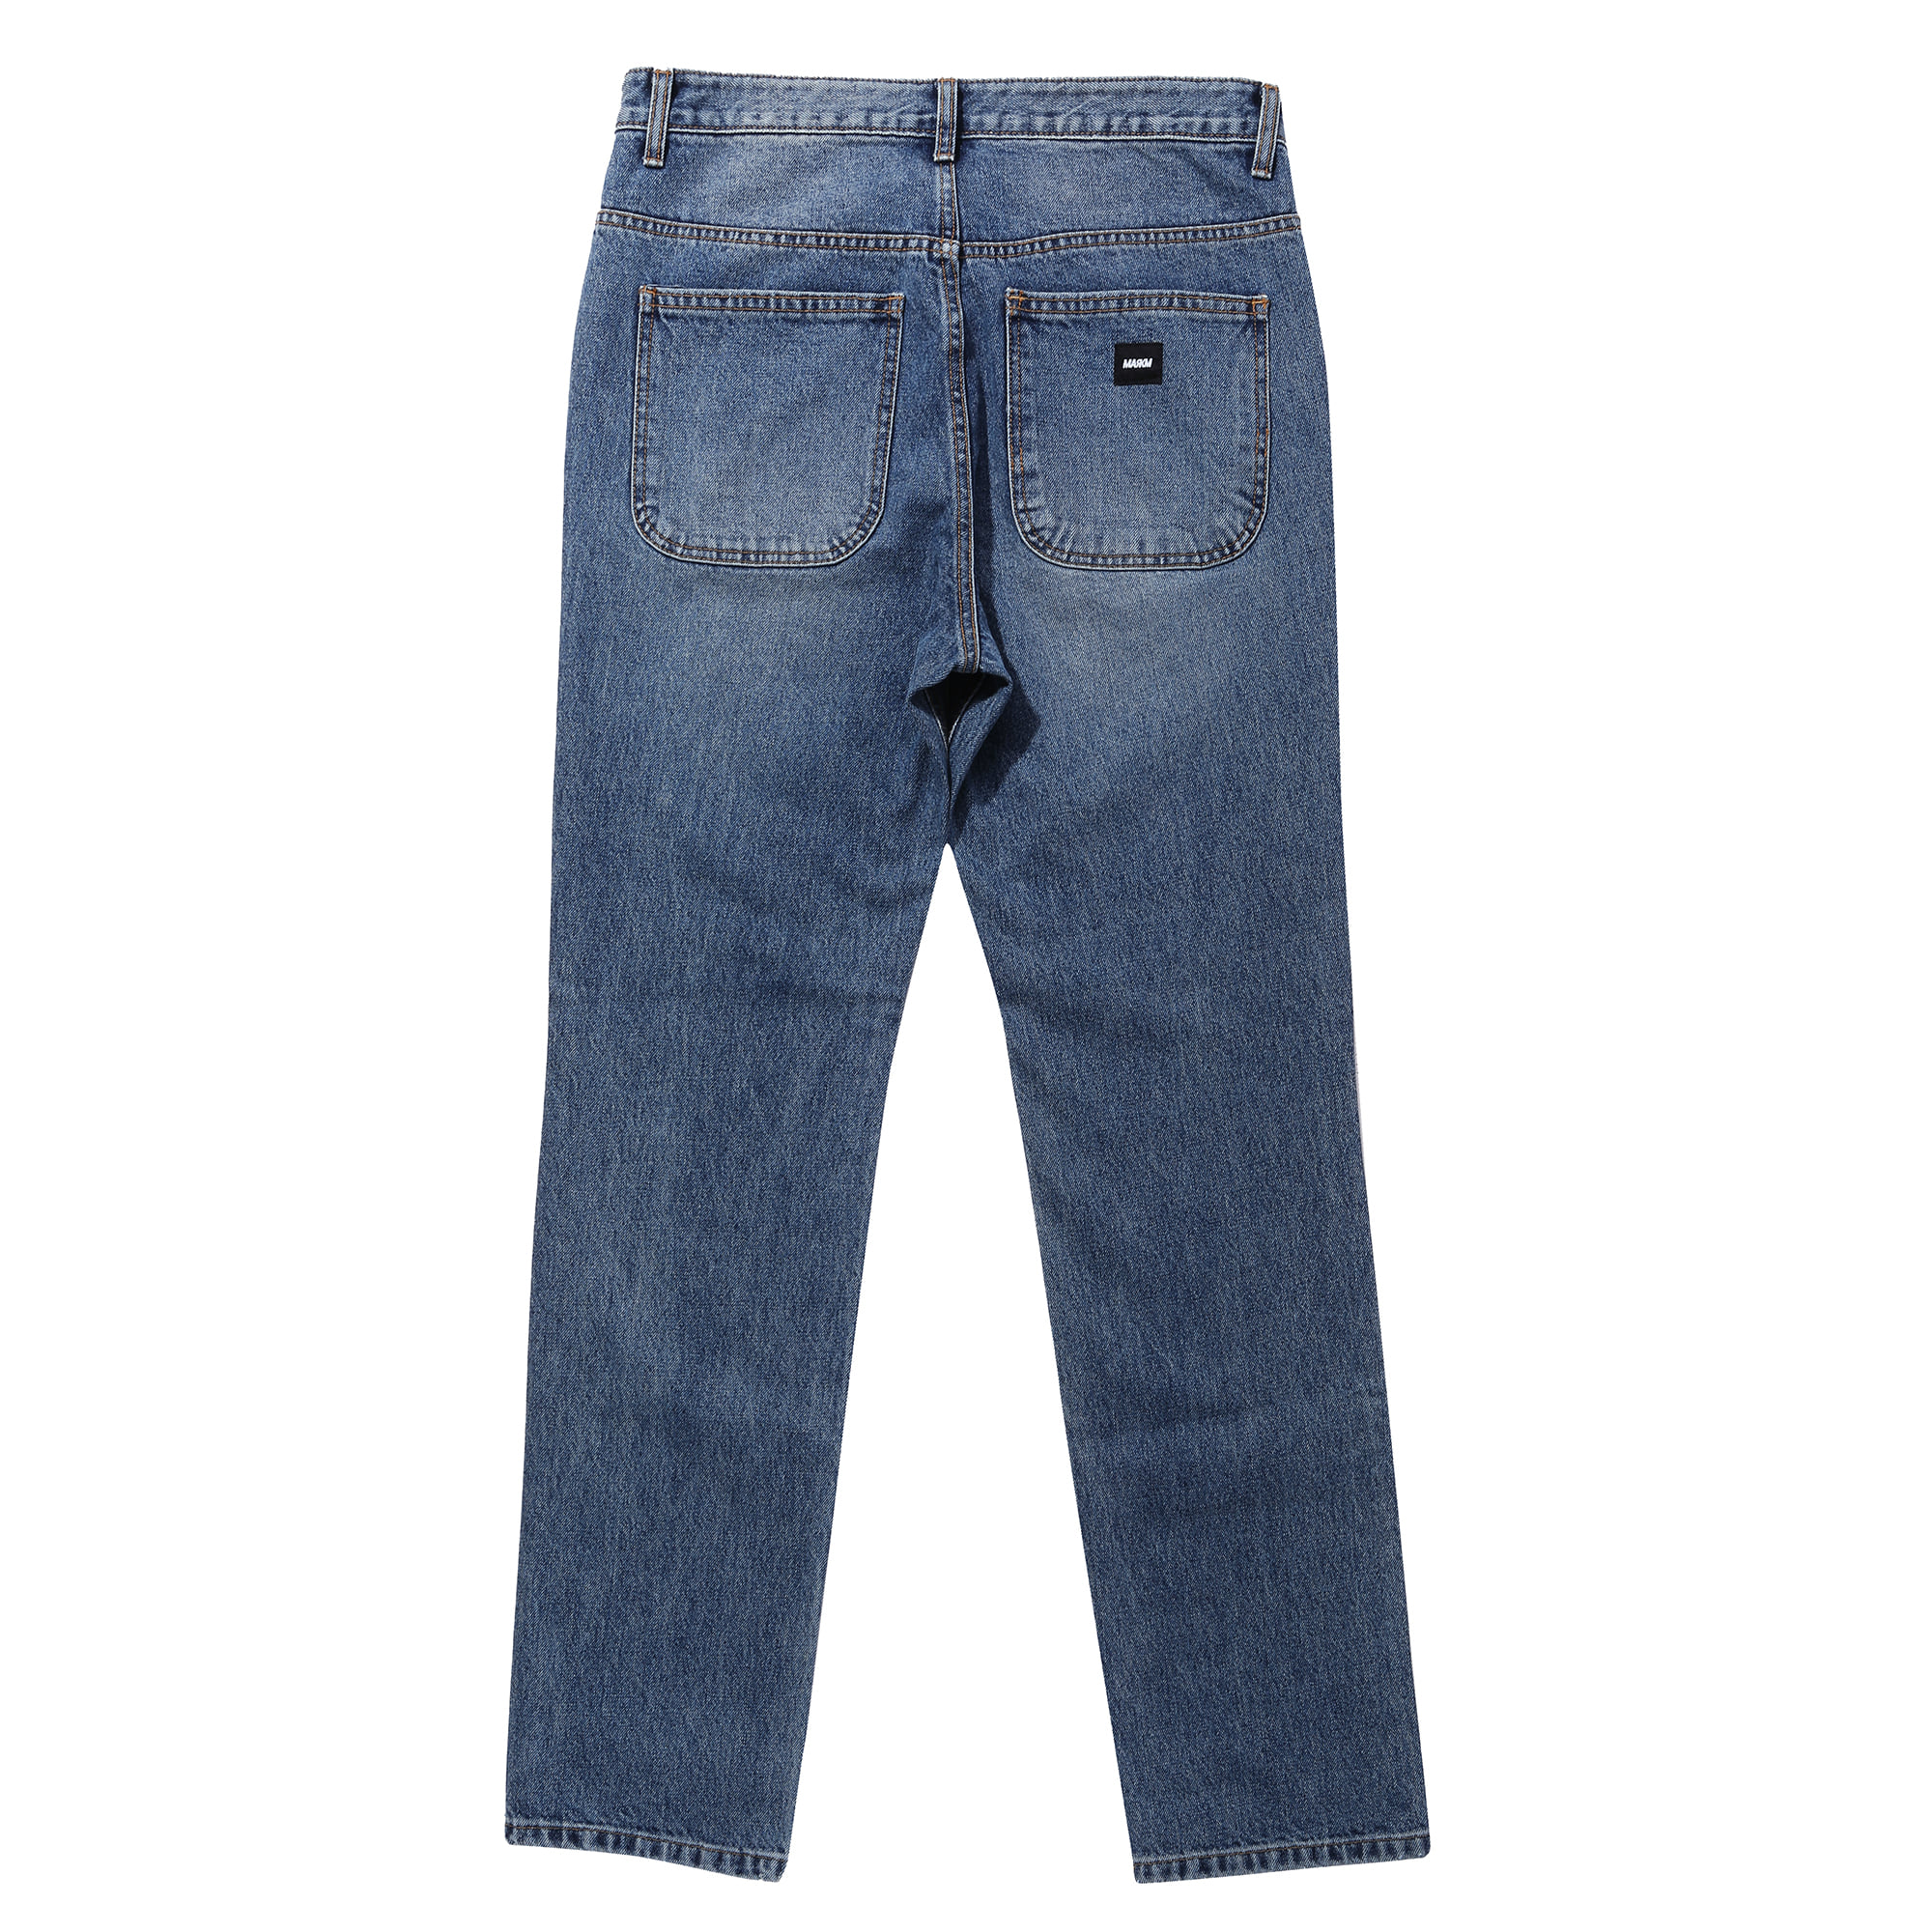 19FW MM Straight Jeans MYFAH4501